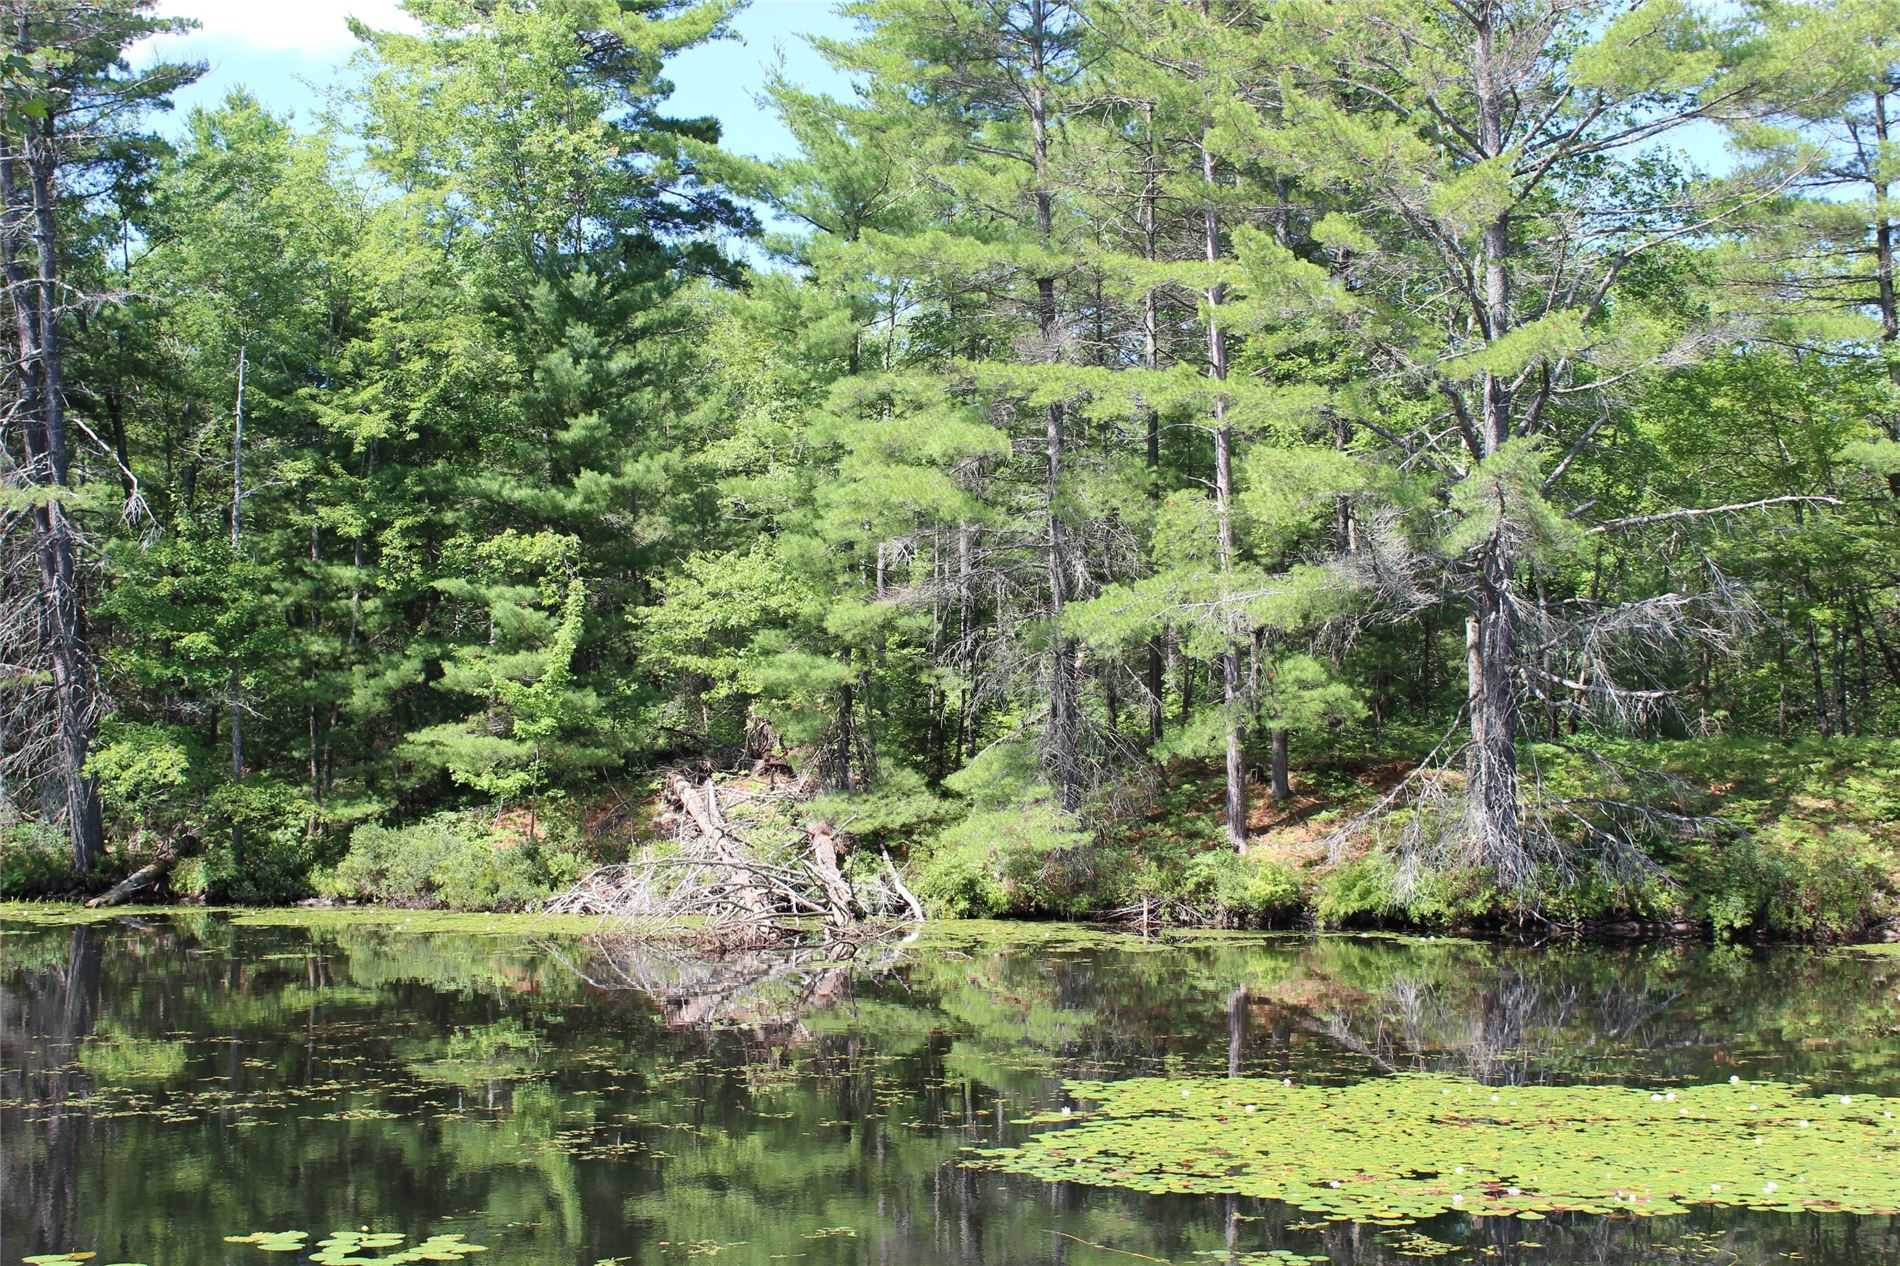 11.179 Acres (As Per Mpac) Of Vacant Land With 965.13M (As Per Mpac) Of River Frontage On Head River (Locally Known As Fishog River), Close To Queen Elizabeth Ii Wildlands Provincial Park, Minutes By Boat To Fishog Lake And Backing Onto Thousands Of Acres Of Crown Land, This Property Is Ideal For A Hunting Cabin Or Potential Cottage. Wildlife Abounds And Fishog Lake Has Bass And Muskie. This Is A Fantastic Opportunity For Those That Love The Outdoors.